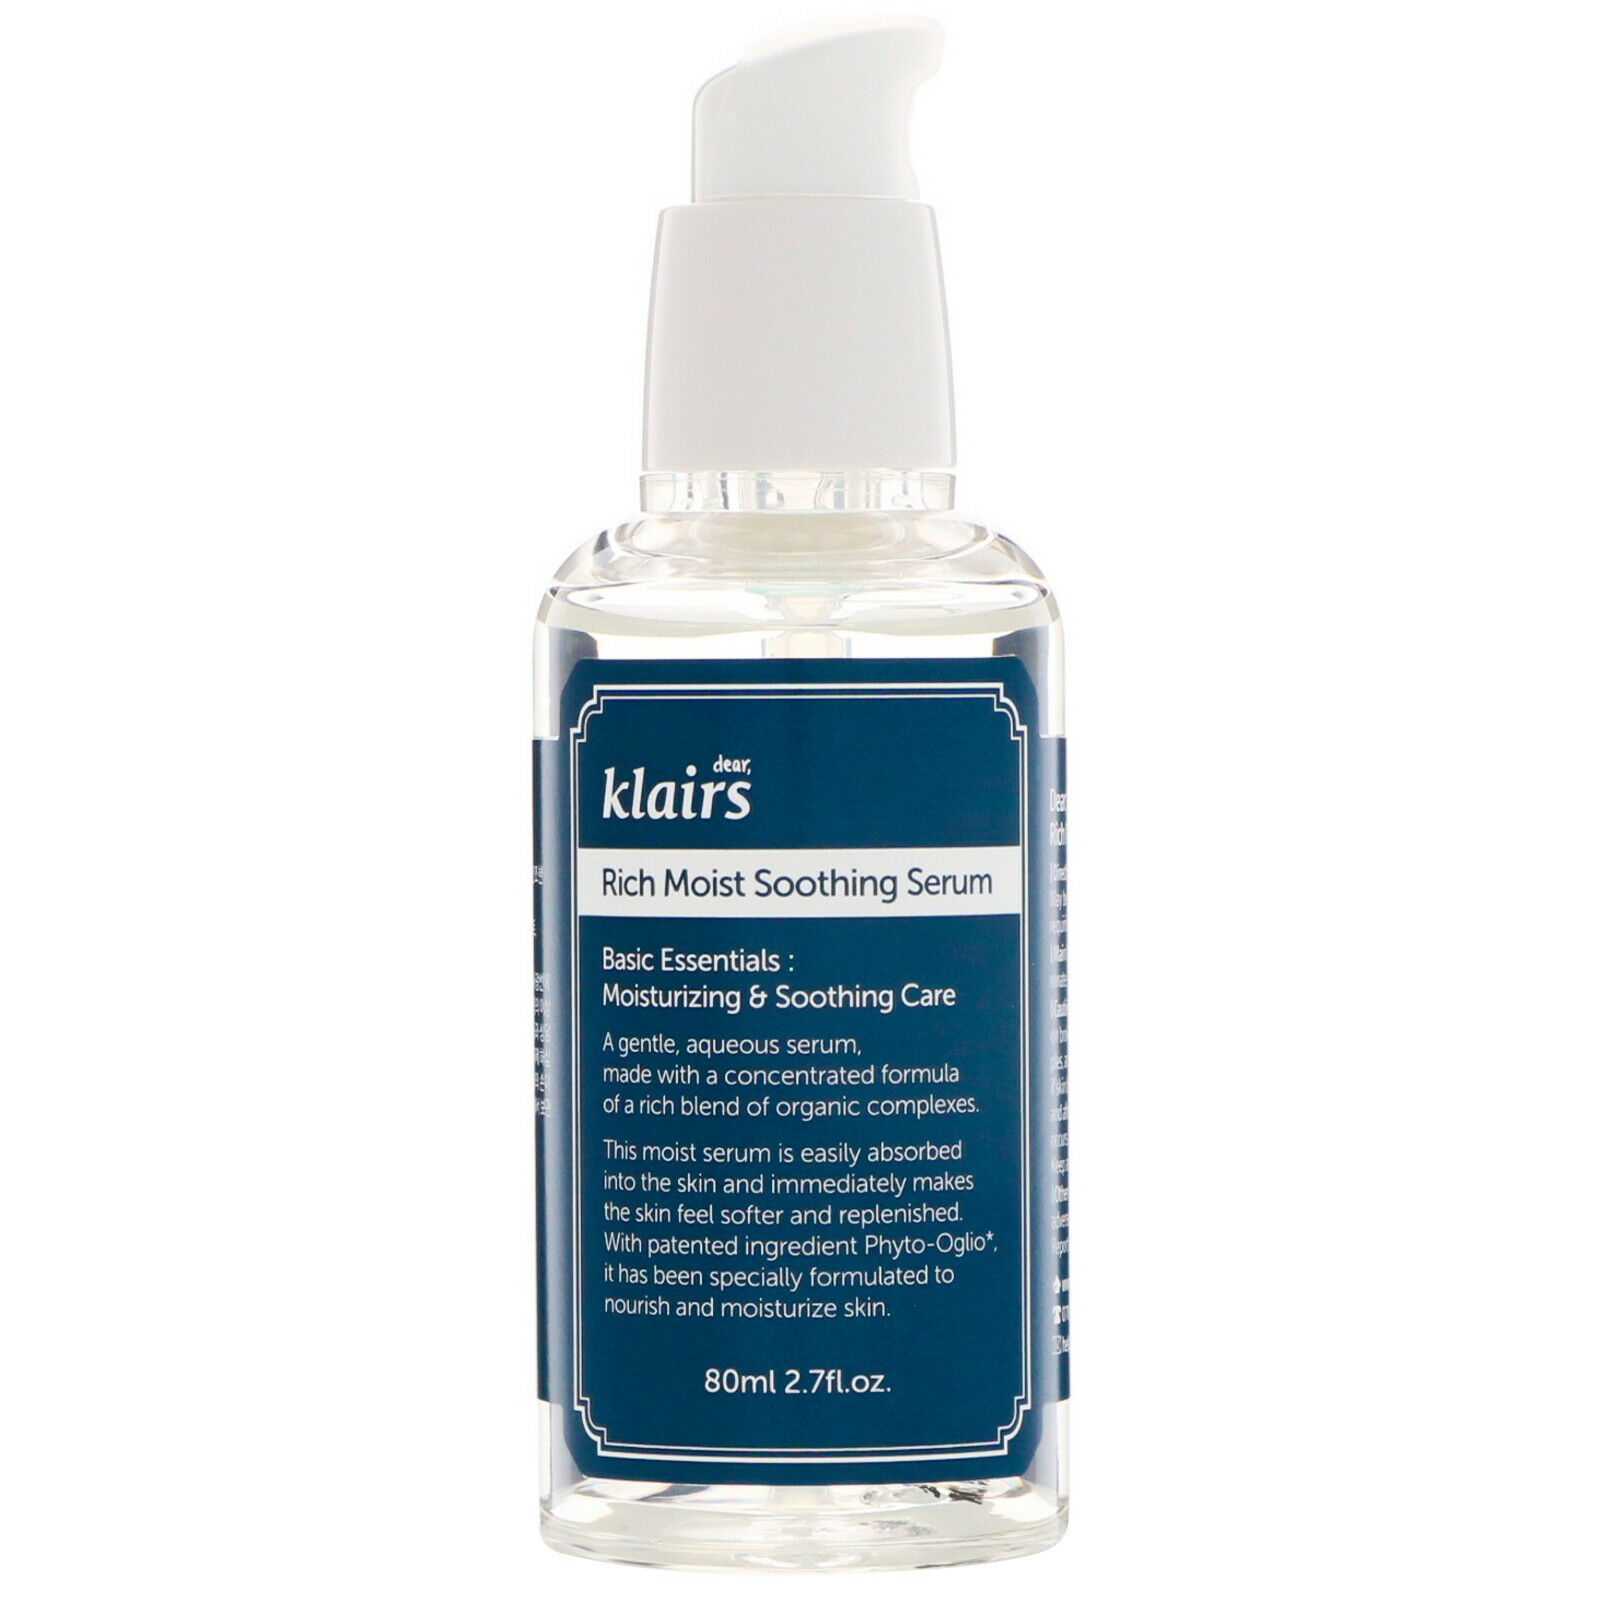 Rich Moist Soothing Serum by Klairs #10